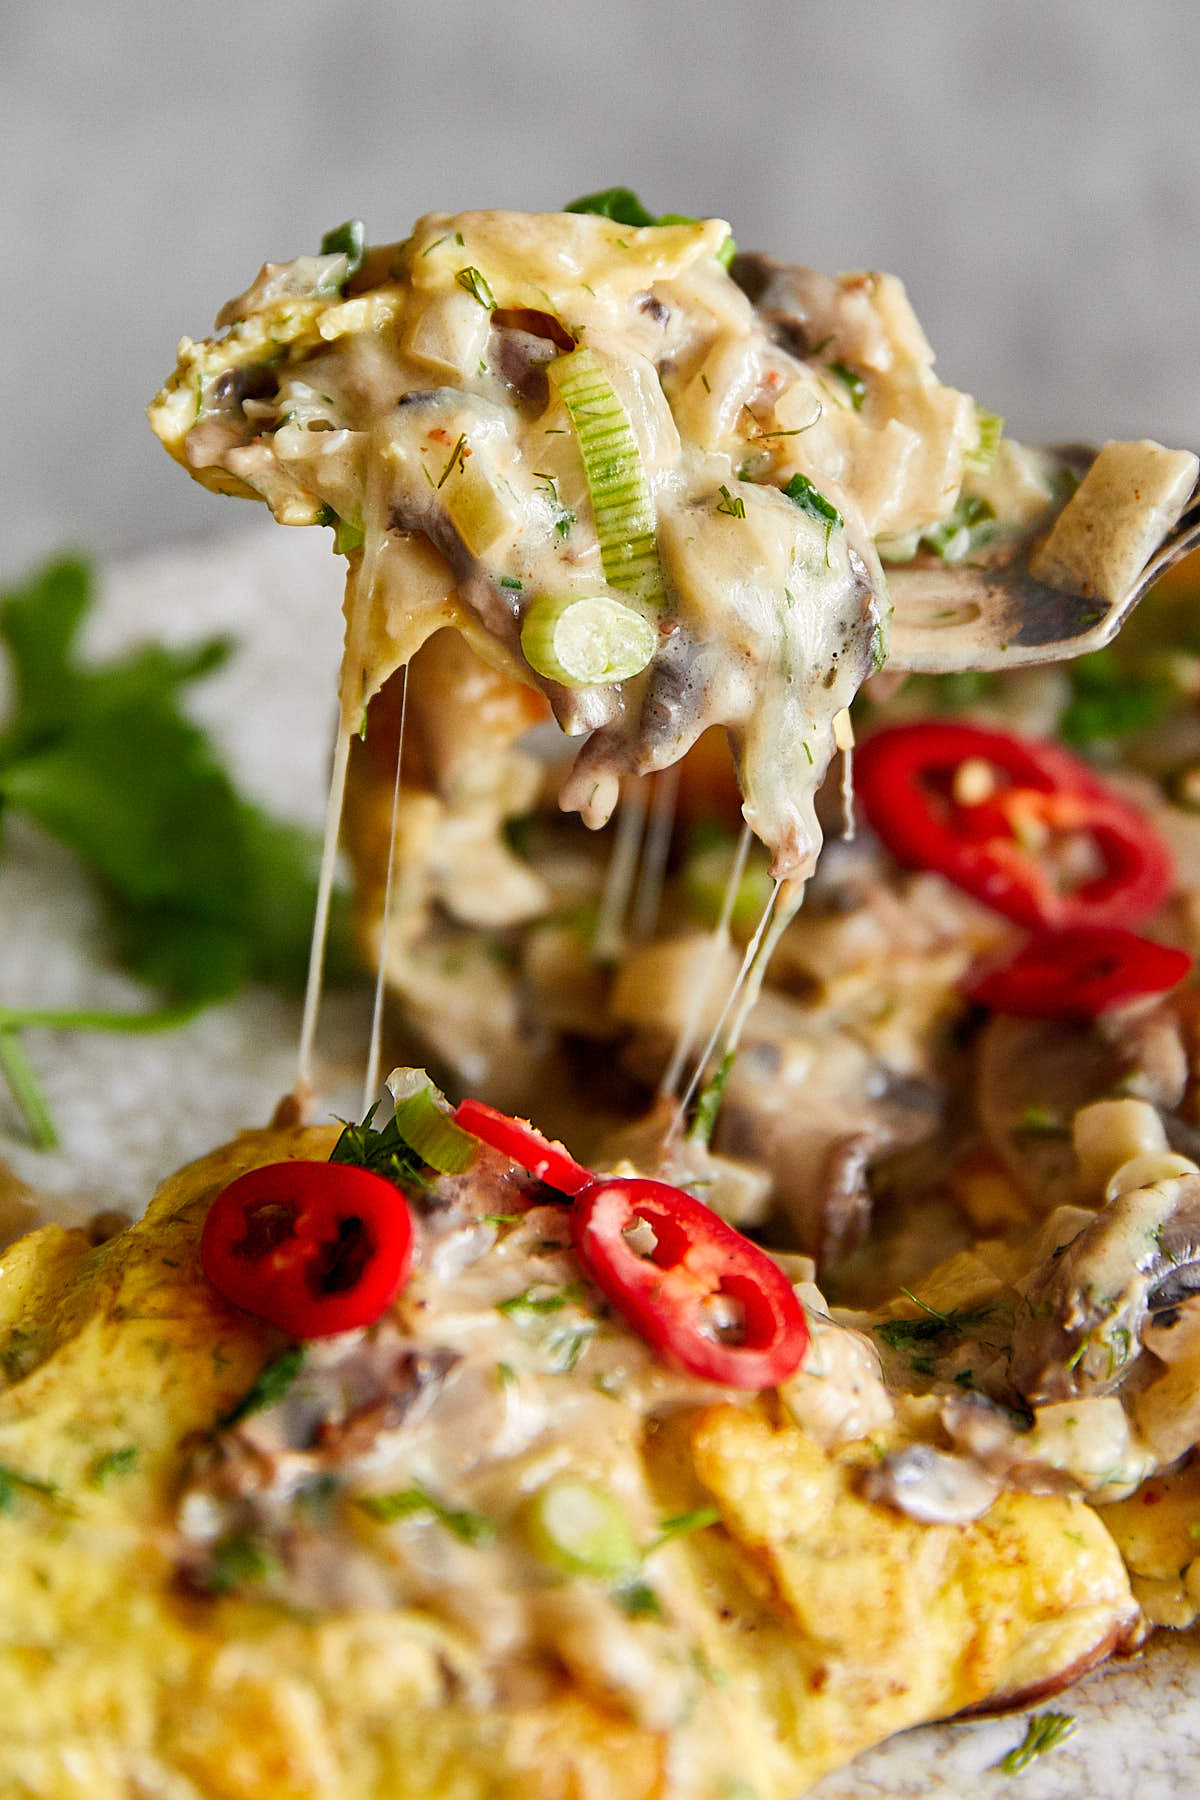 Mushroom Omelette with Creamy, Cheesy Mushroom Filling made with White Wine